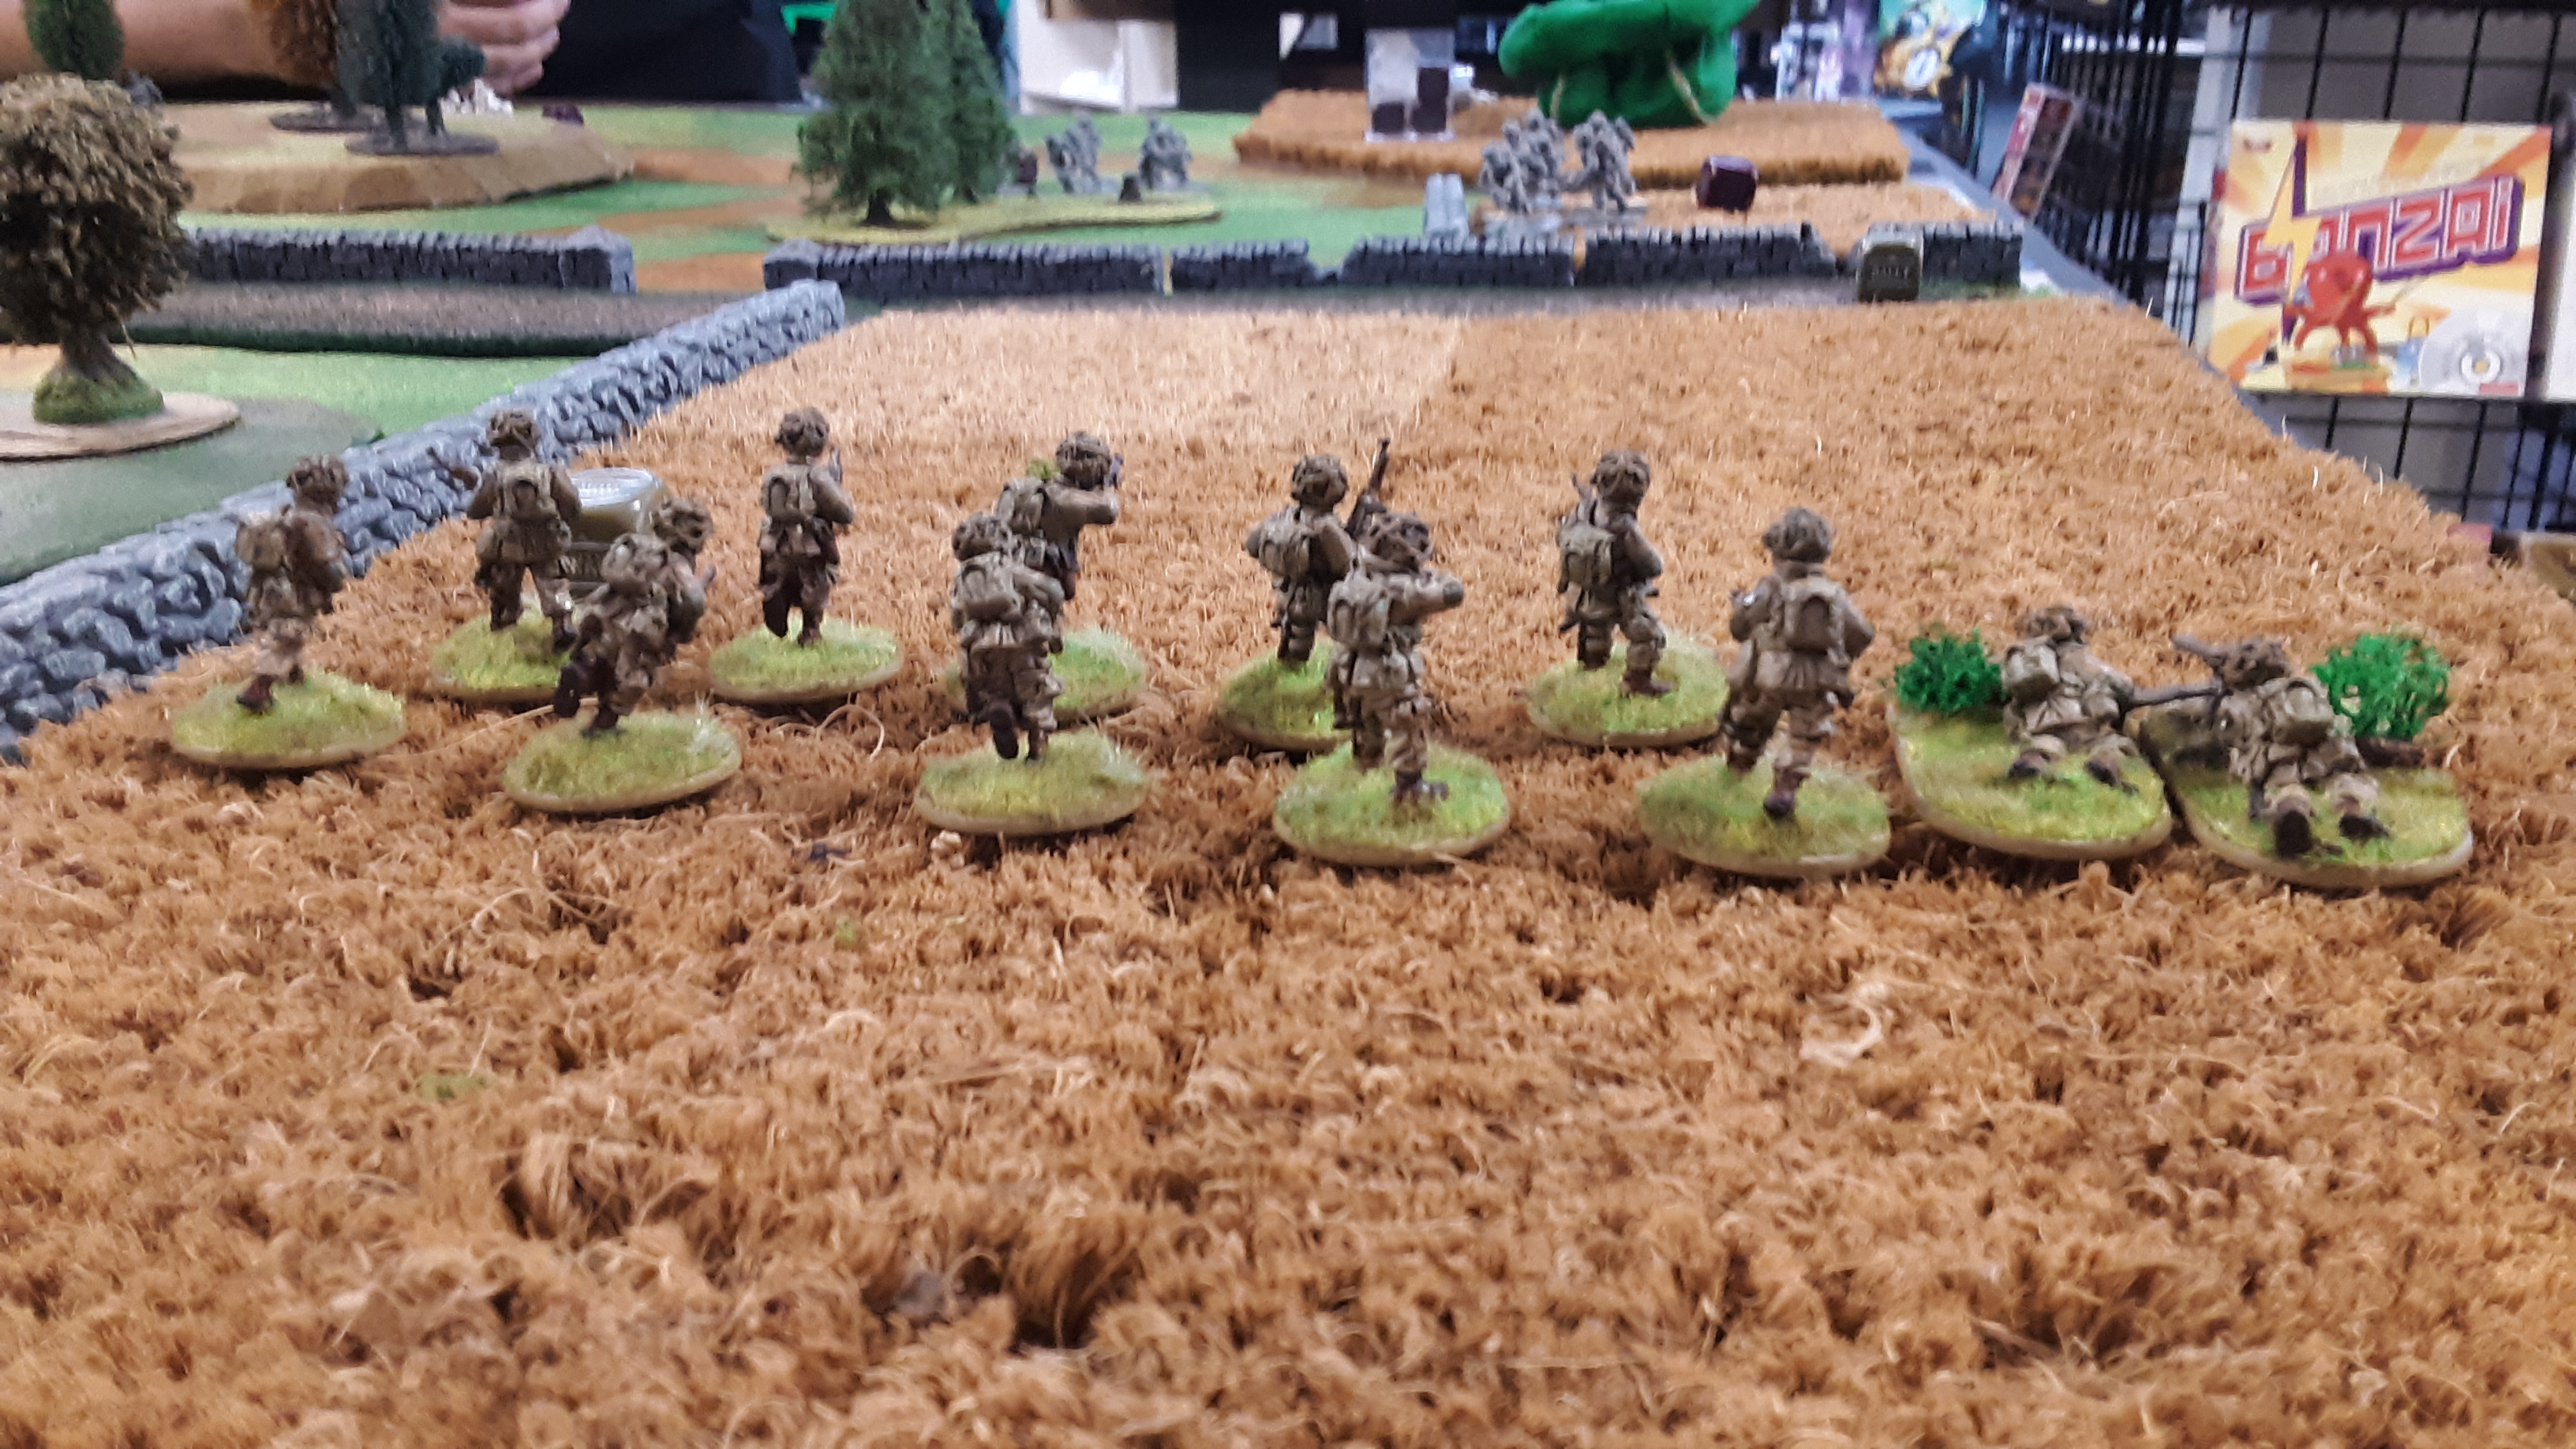 289th Infantry Regiment versus The 20th corps in a fierce infantry engagement